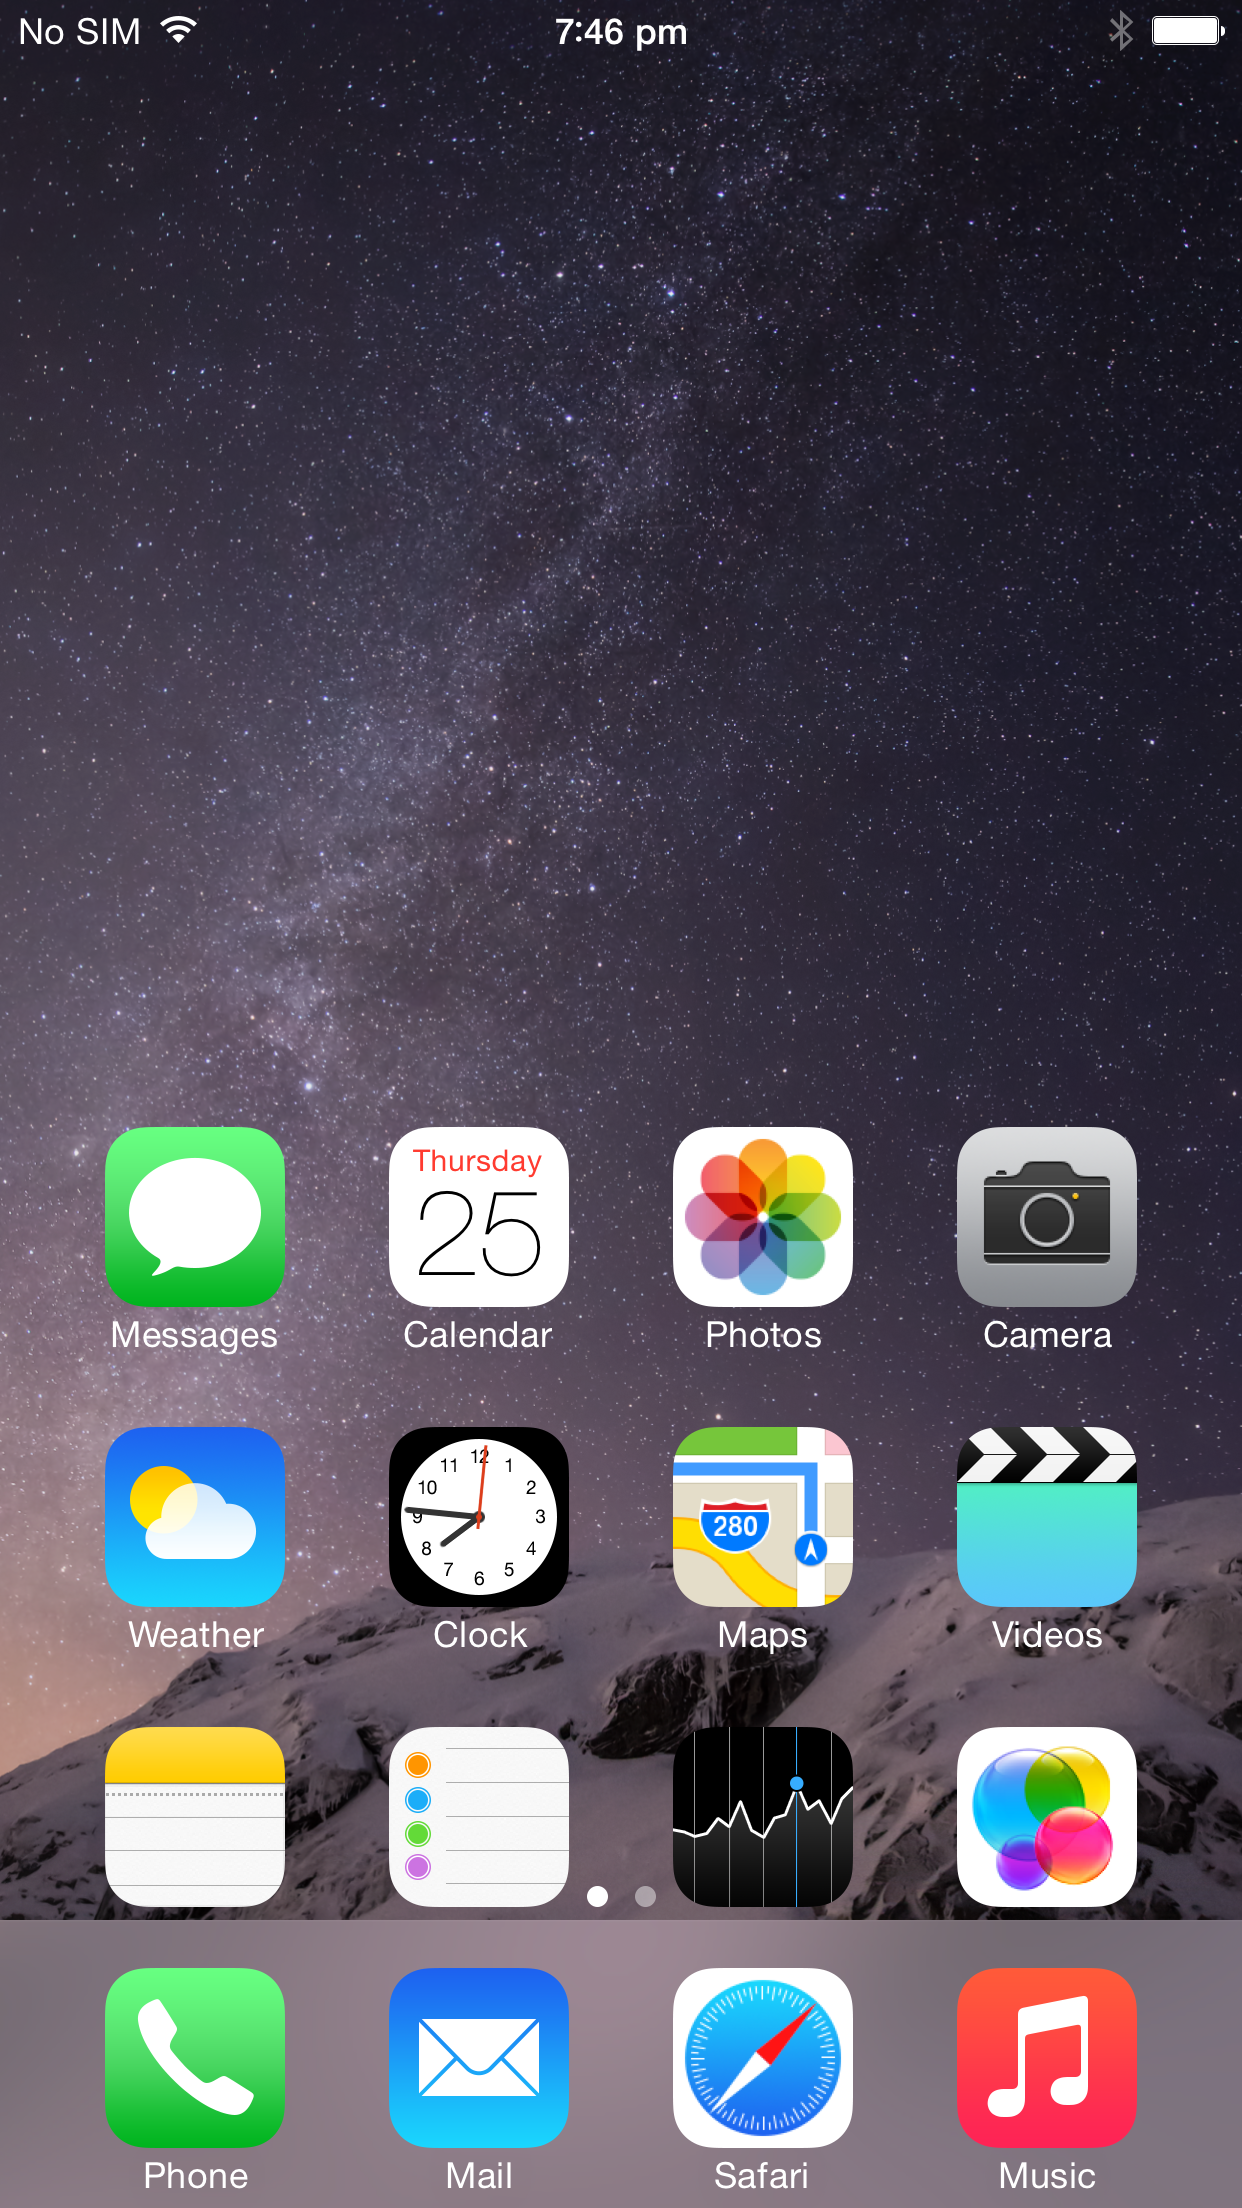 Reachability brings the top of the screen within easy reach, but its not the most intuitive feature to use.